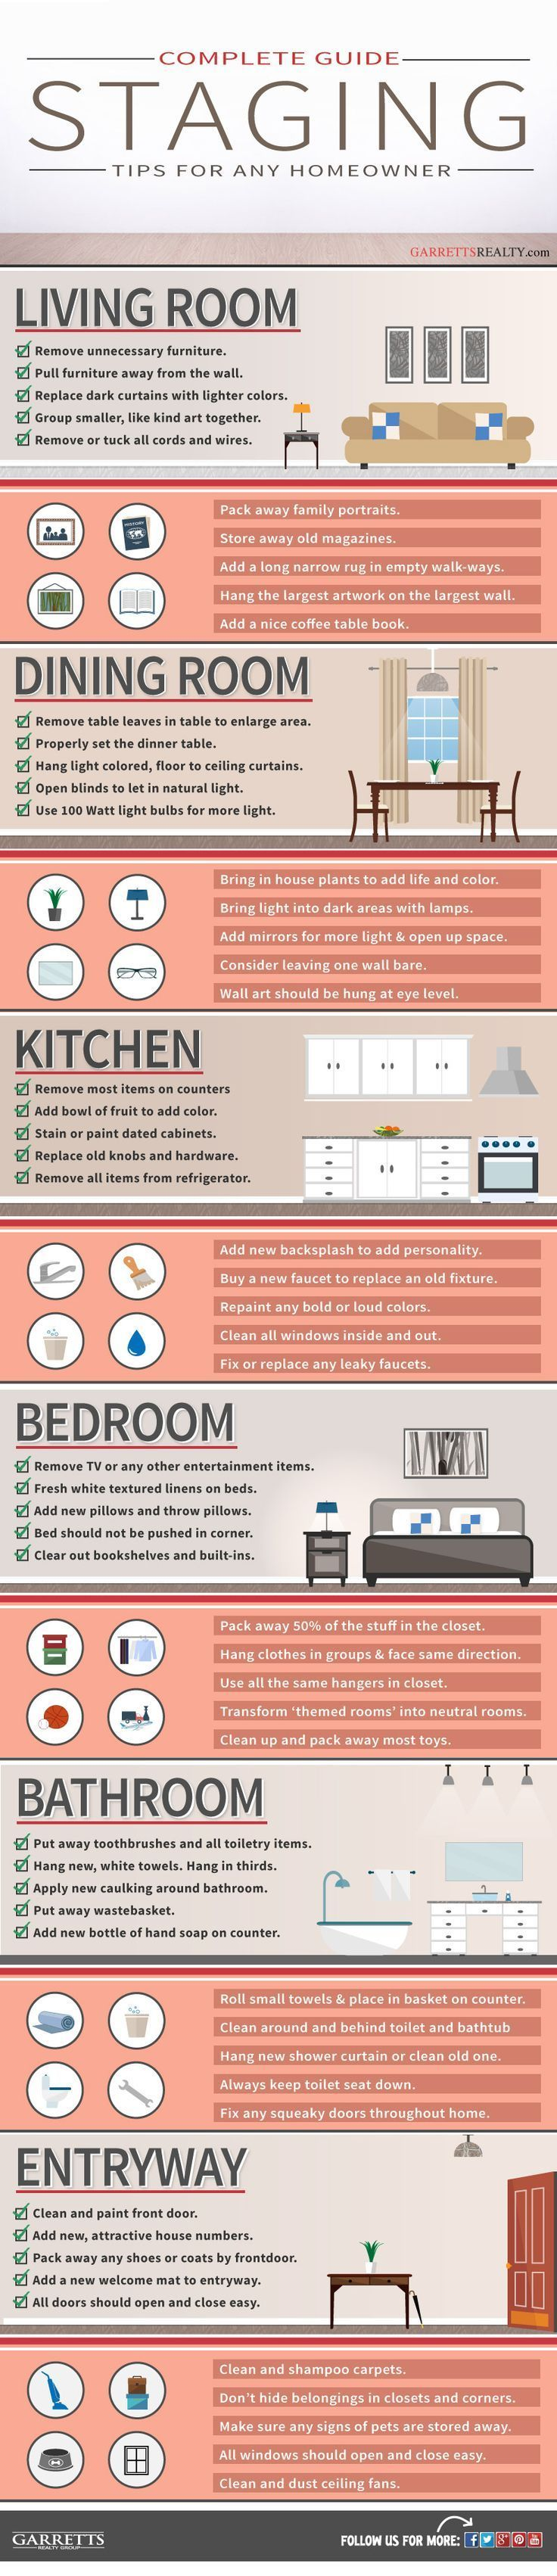 61 best Home Staging images on Pinterest | Homes, My house and ...